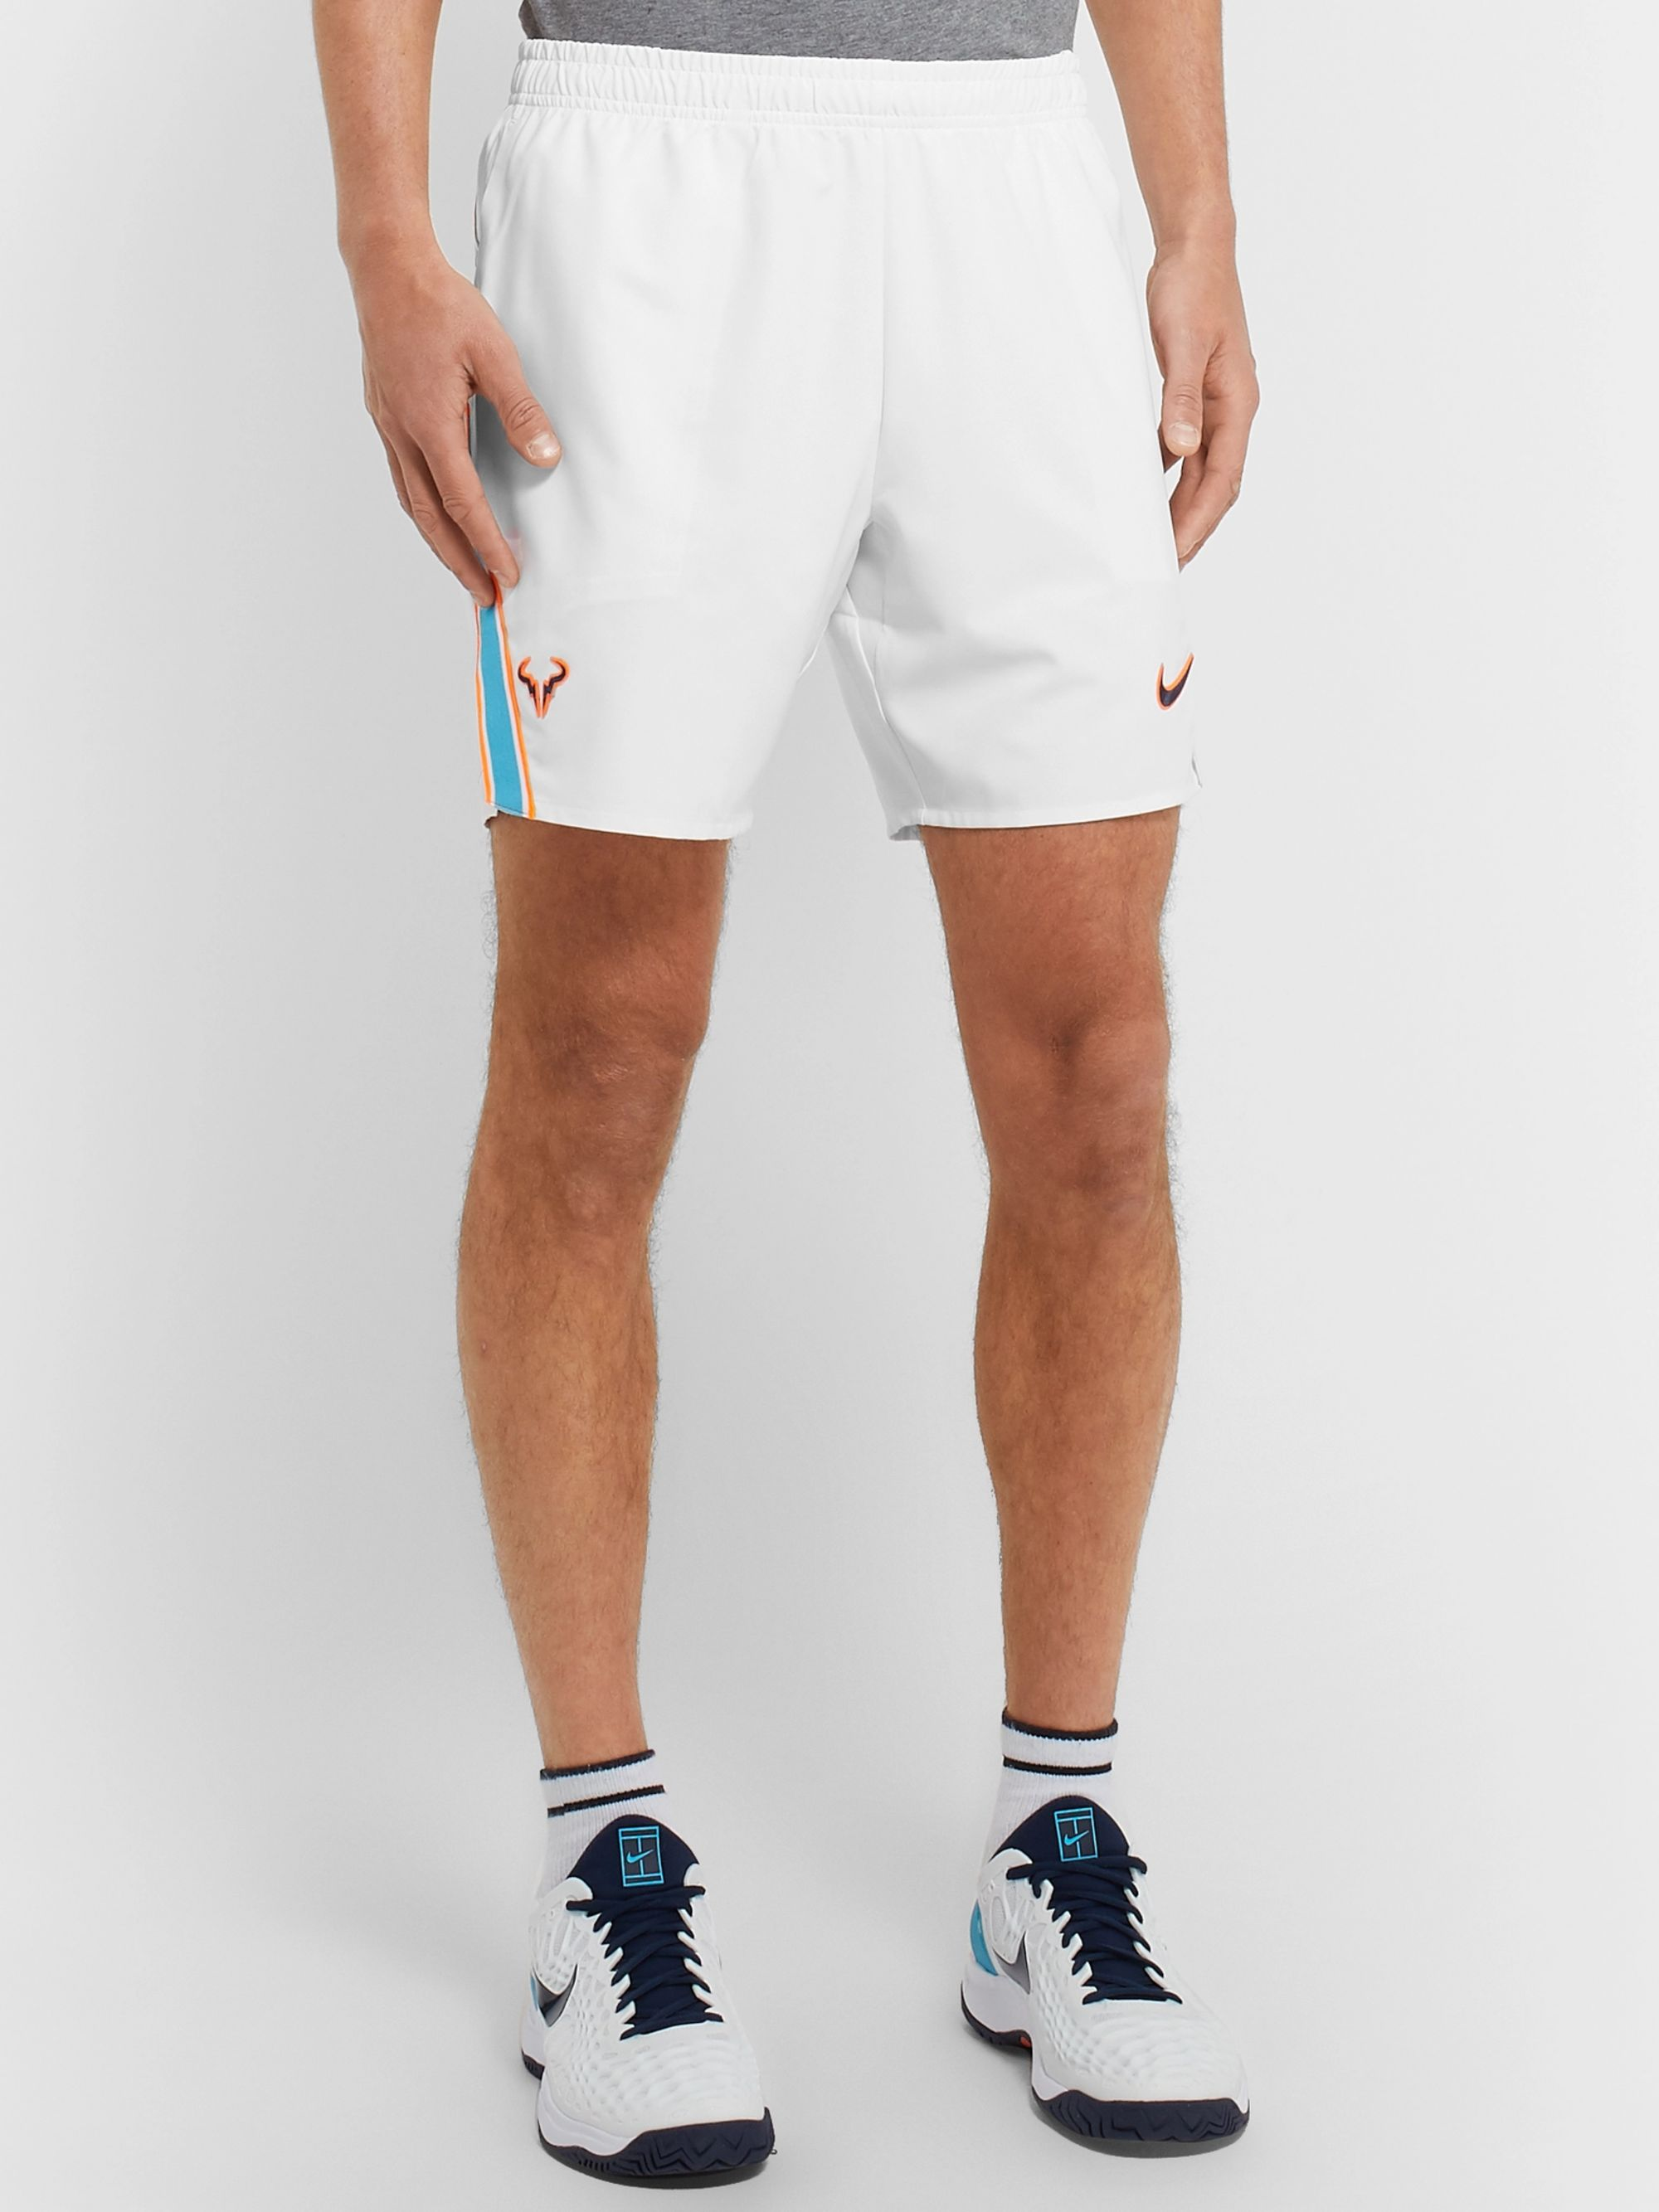 Nike Tennis NikeCourt Rafa Ace Flex Dri-FIT Tennis Shorts